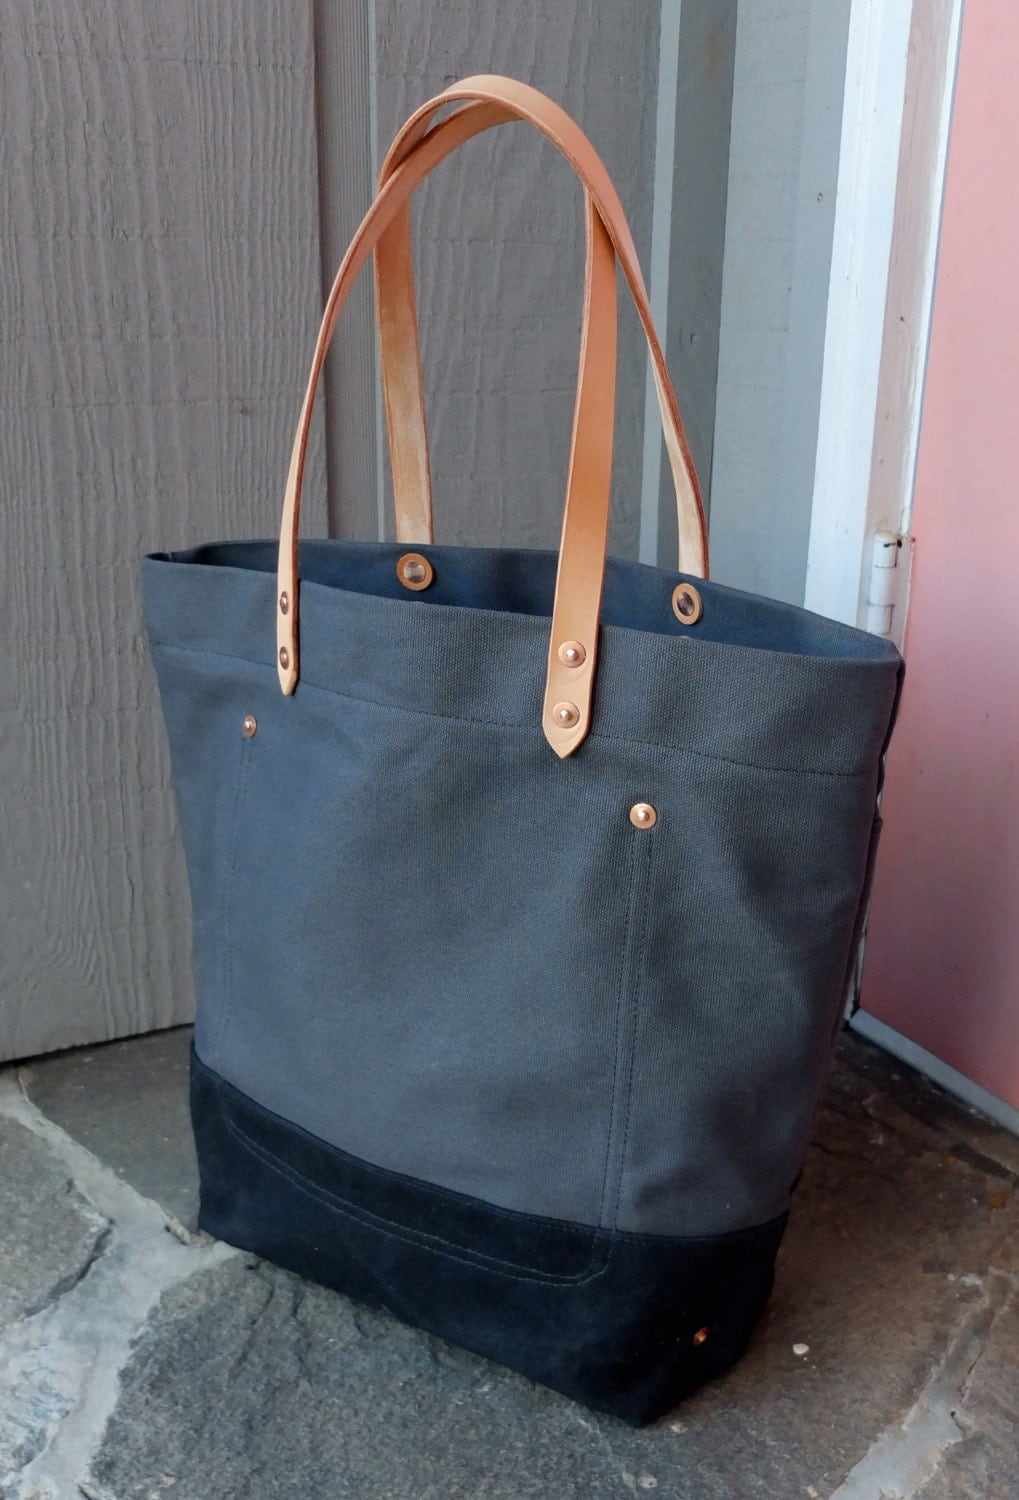 Waxed Canvas Tote Bag with Leather Handles Large Charcoal